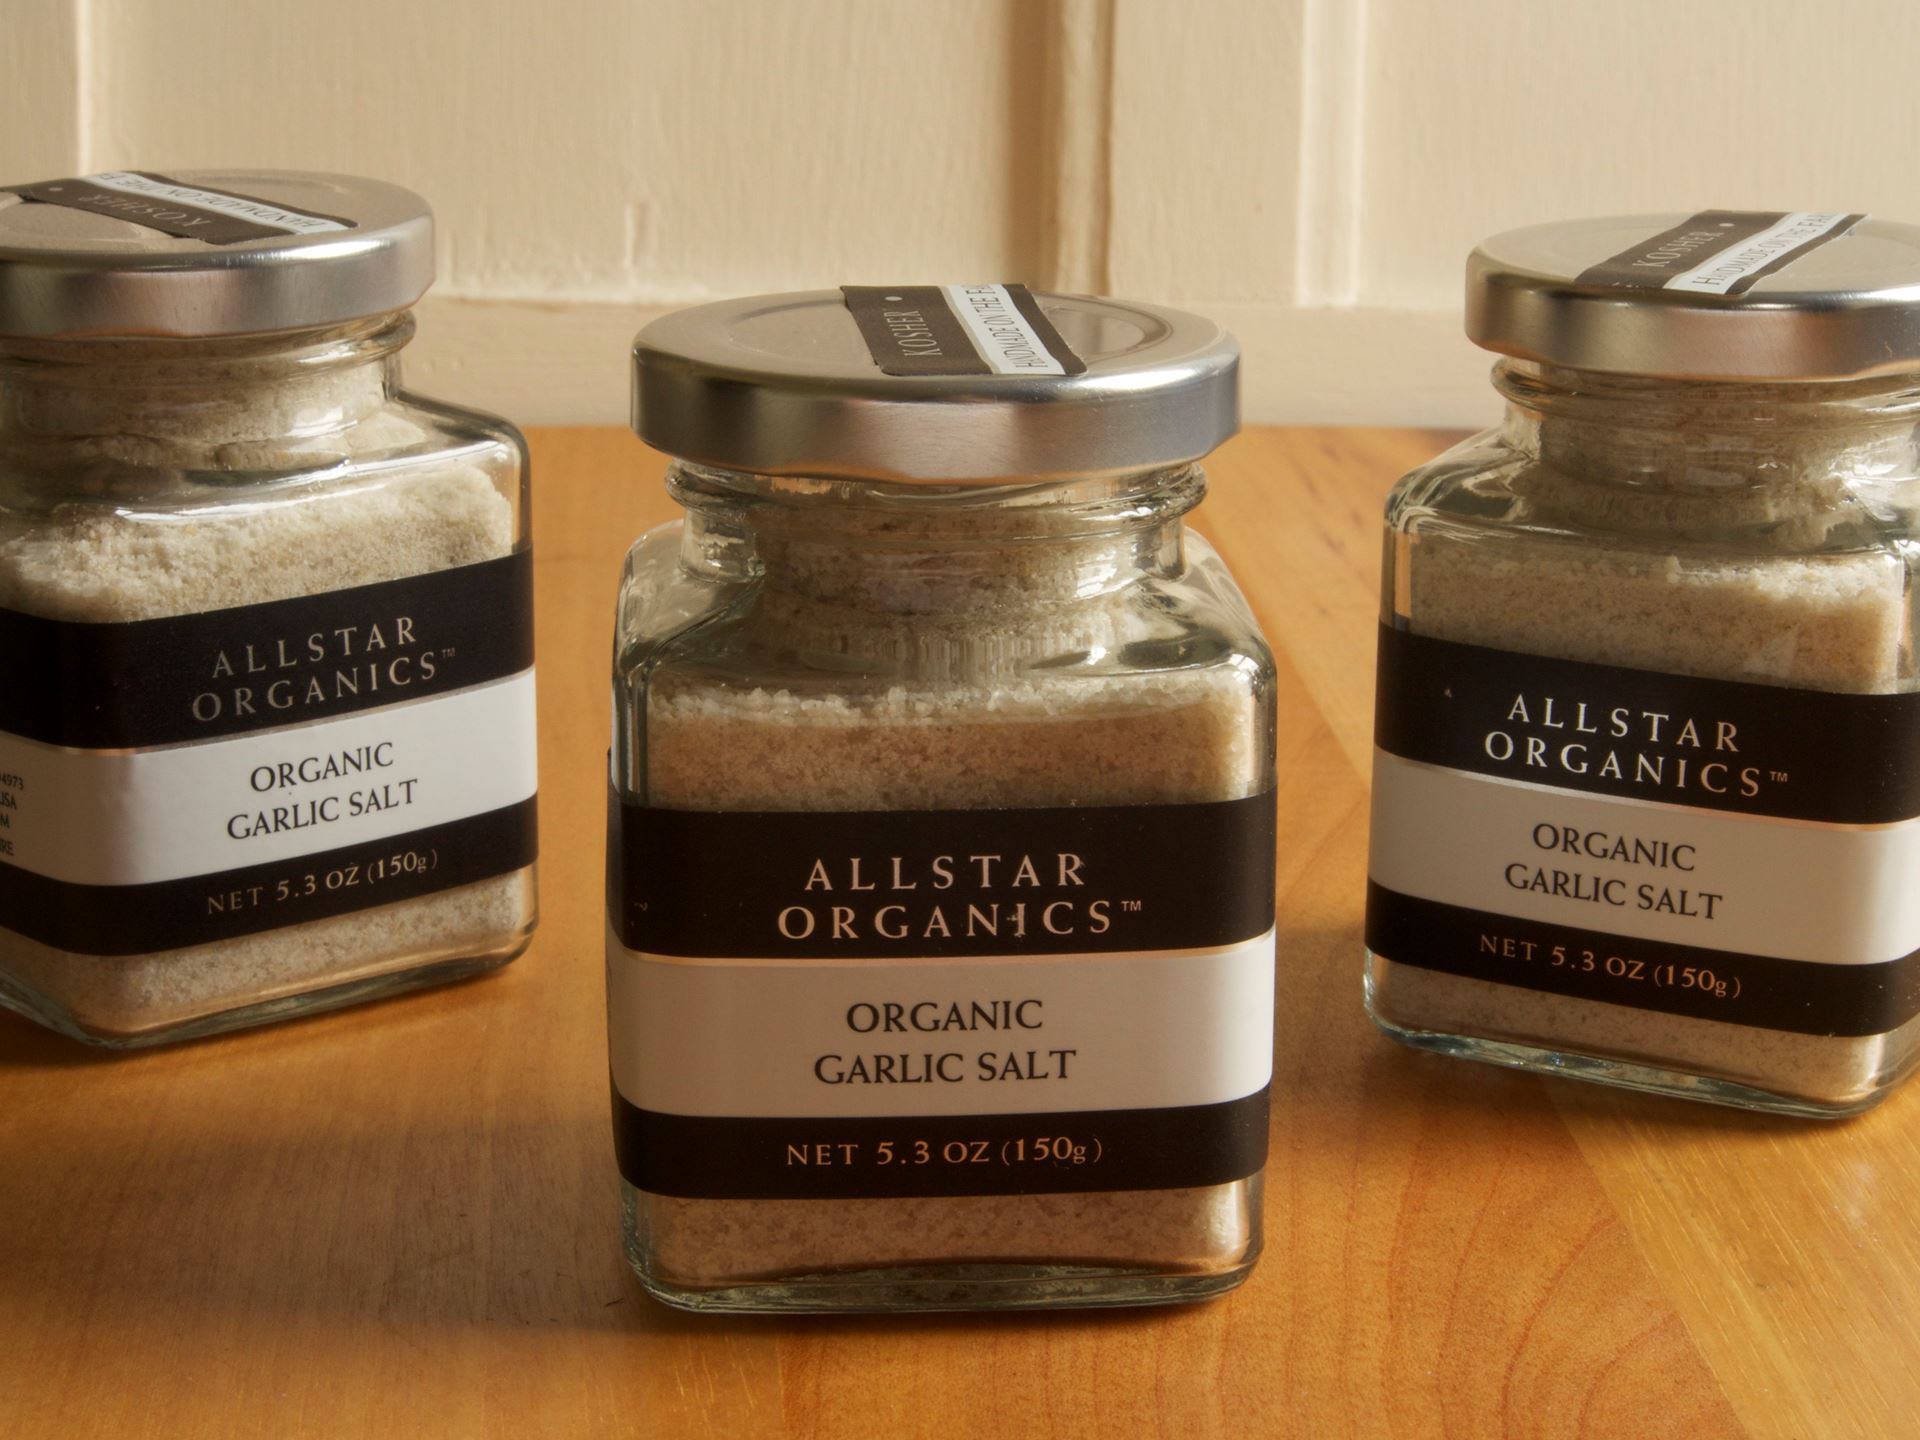 Picture of Allstar Organics Garlic Salt